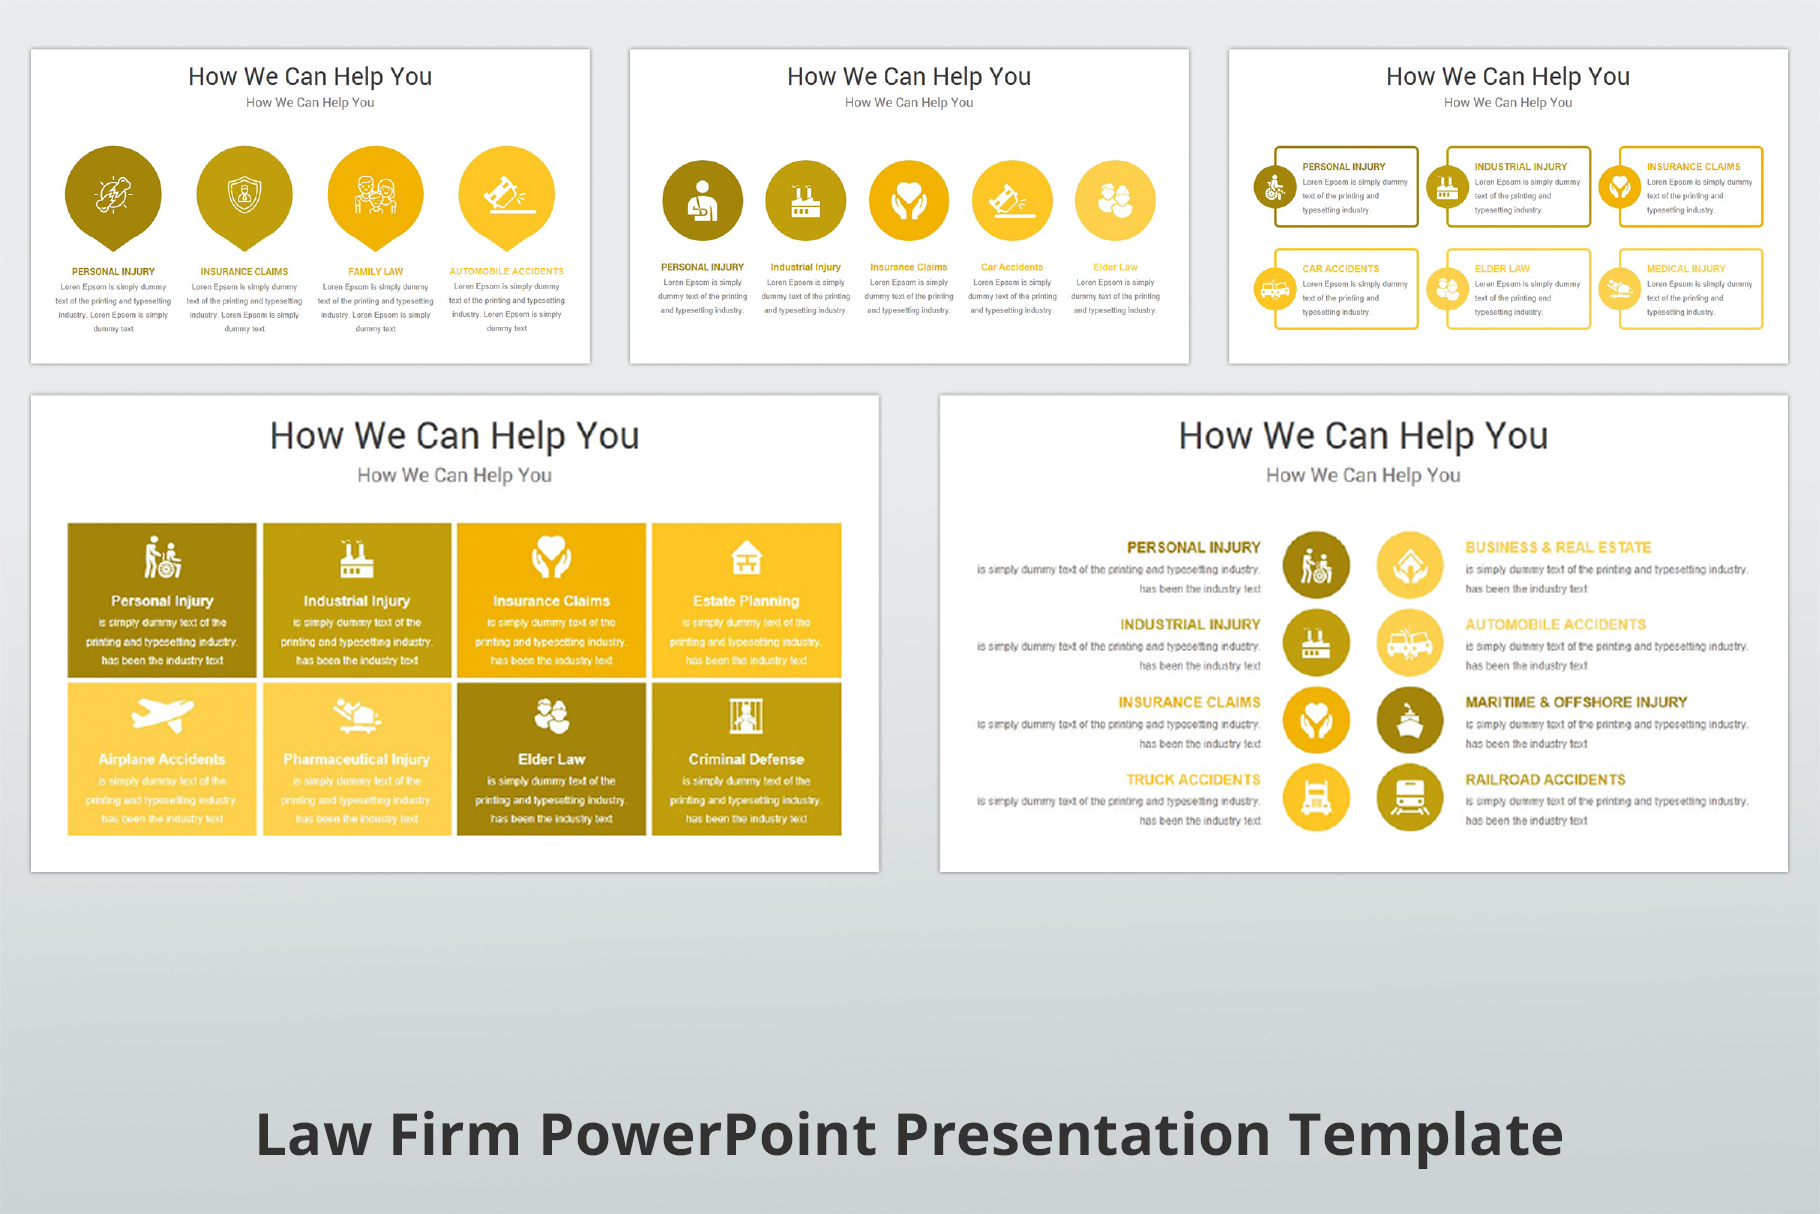 Law Firm PowerPoint Presentation Template example image 7